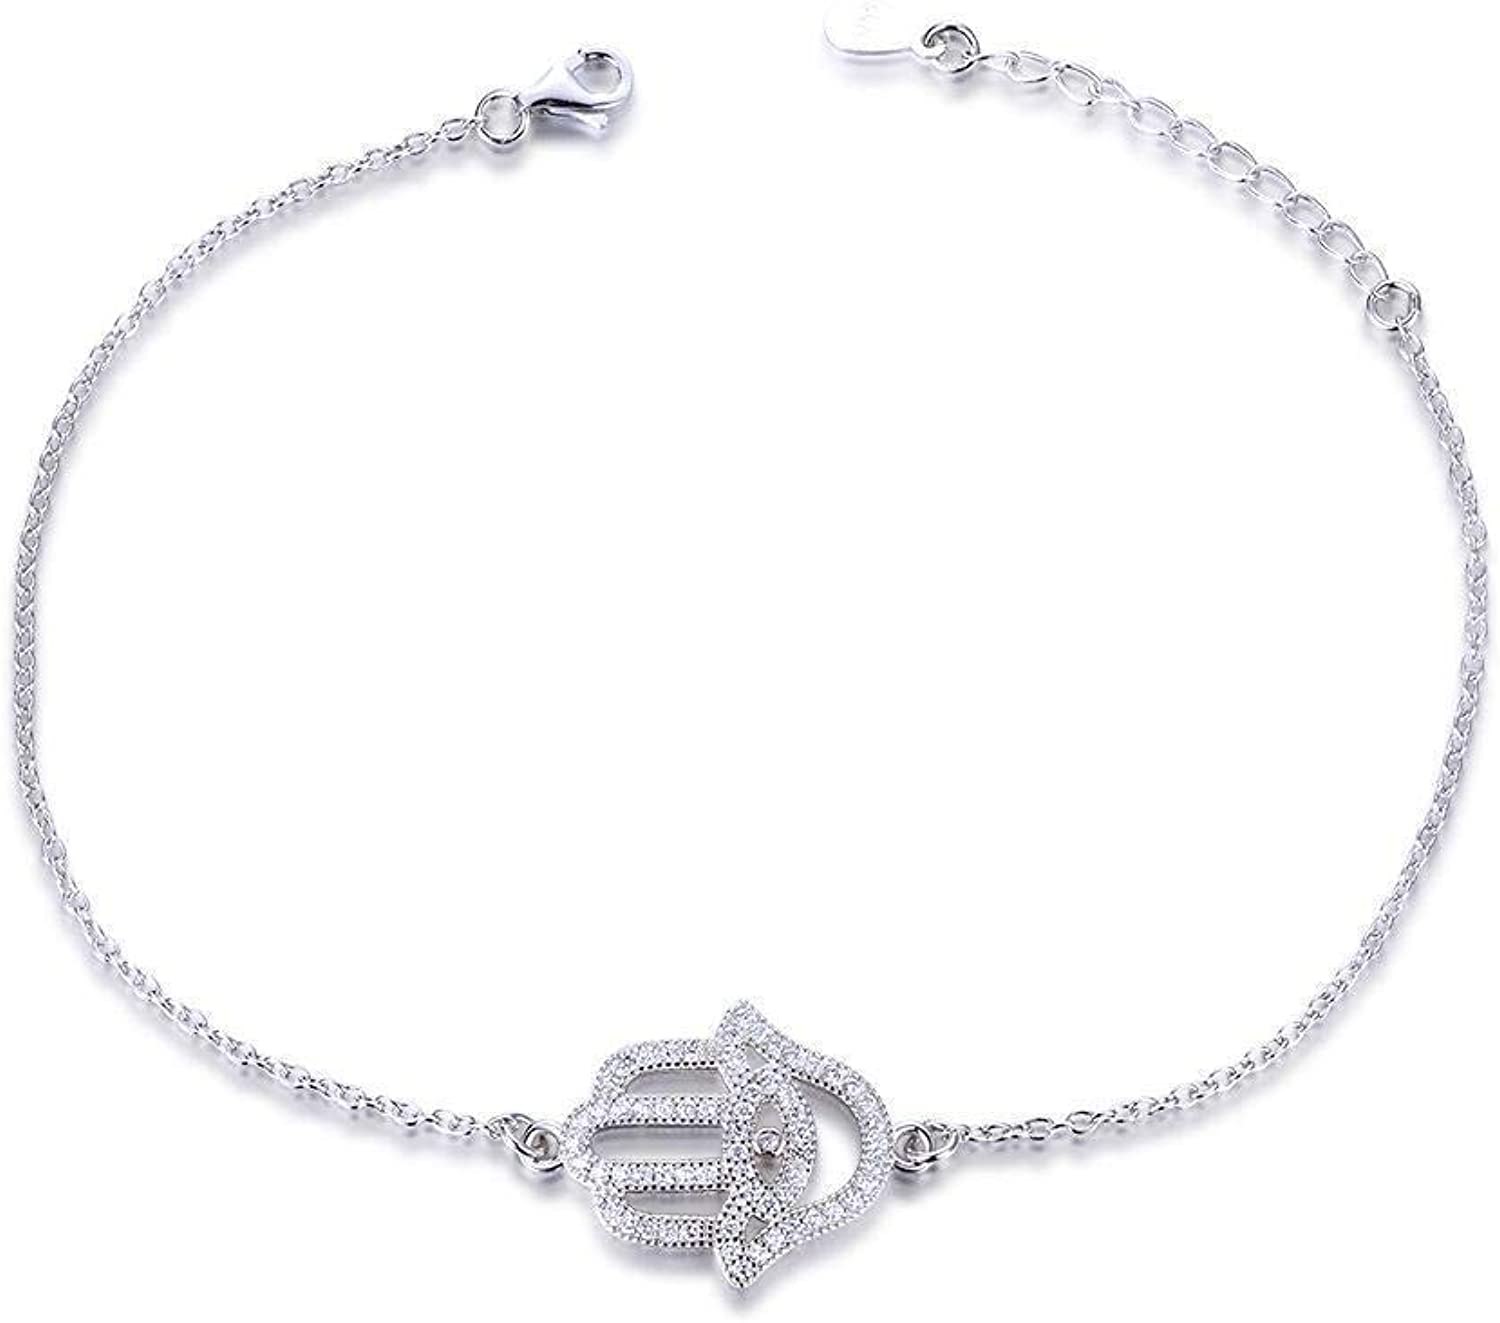 Zicue Stylish Charming Bracelet Exquisite Ornaments Lady's hand decorated Crown Diamond adjustable bracelet lady Gift